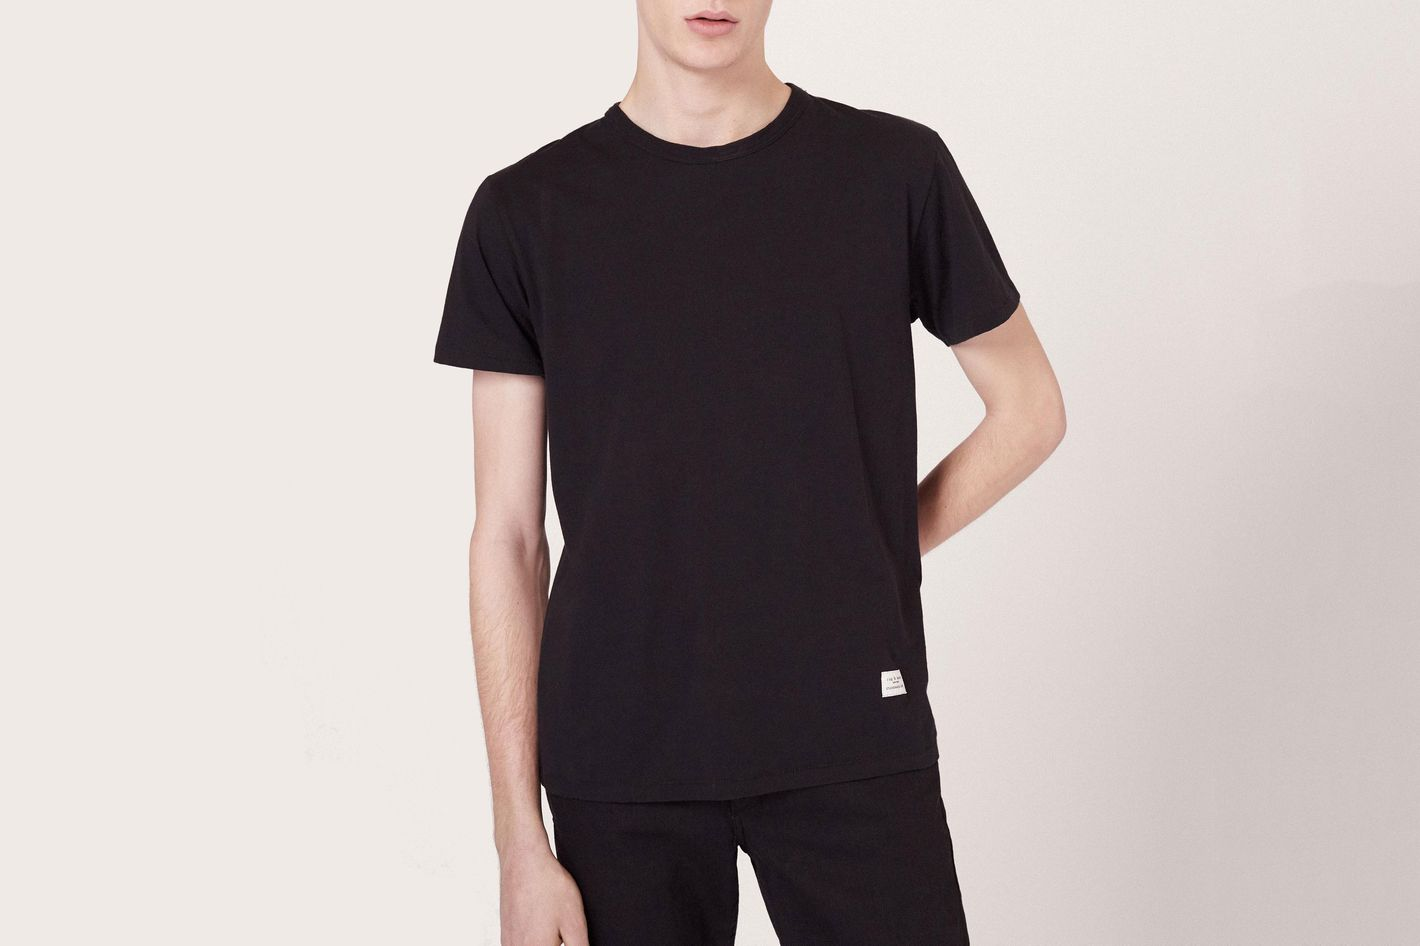 6bf7e0e45f7 13 Best Black T-shirts for Men 2018